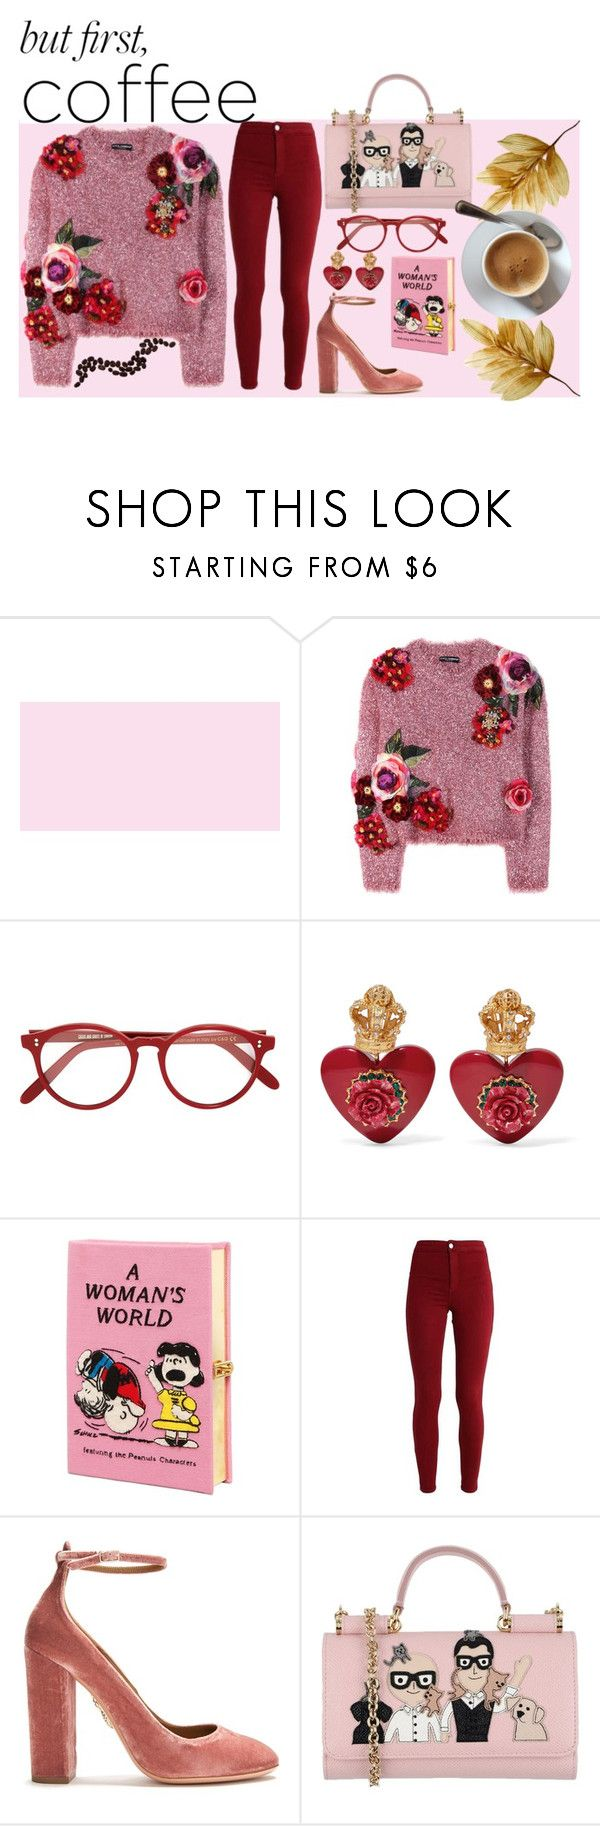 """""""But first, coffee! - Red & Pink Theme // Competition"""" by kyamhill on Polyvore featuring Dolce&Gabbana, Cutler and Gross, Olympia Le-Tan and Aquazzura"""